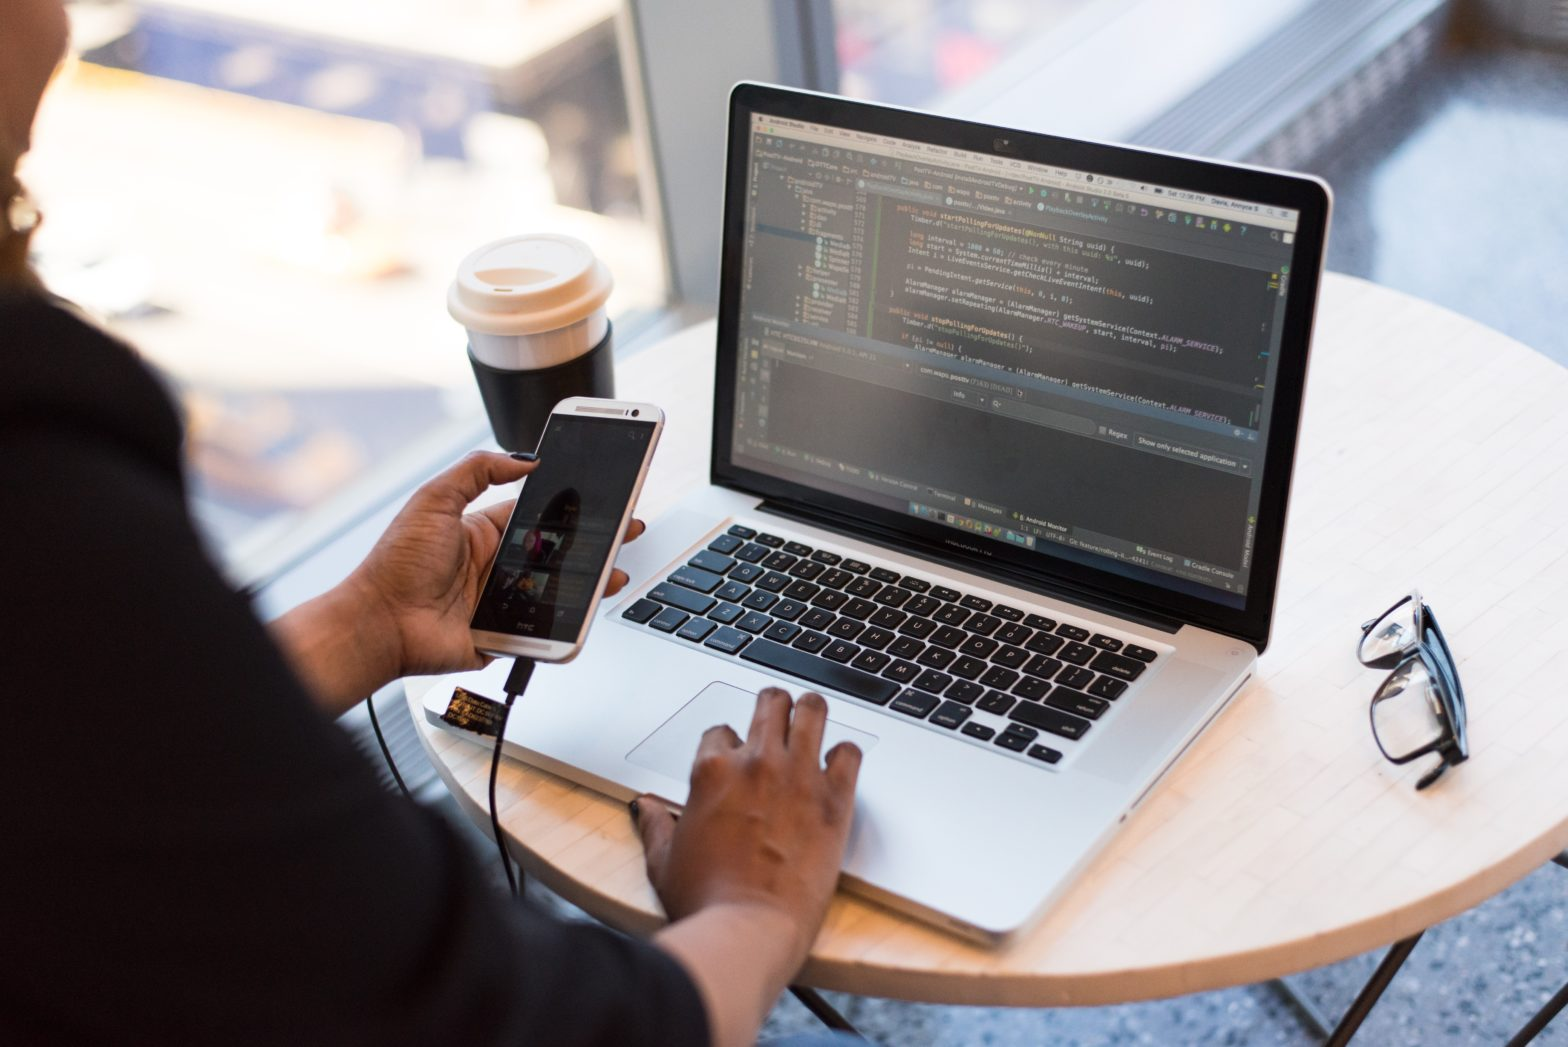 10 questions to ask before hiring web appdevelopers